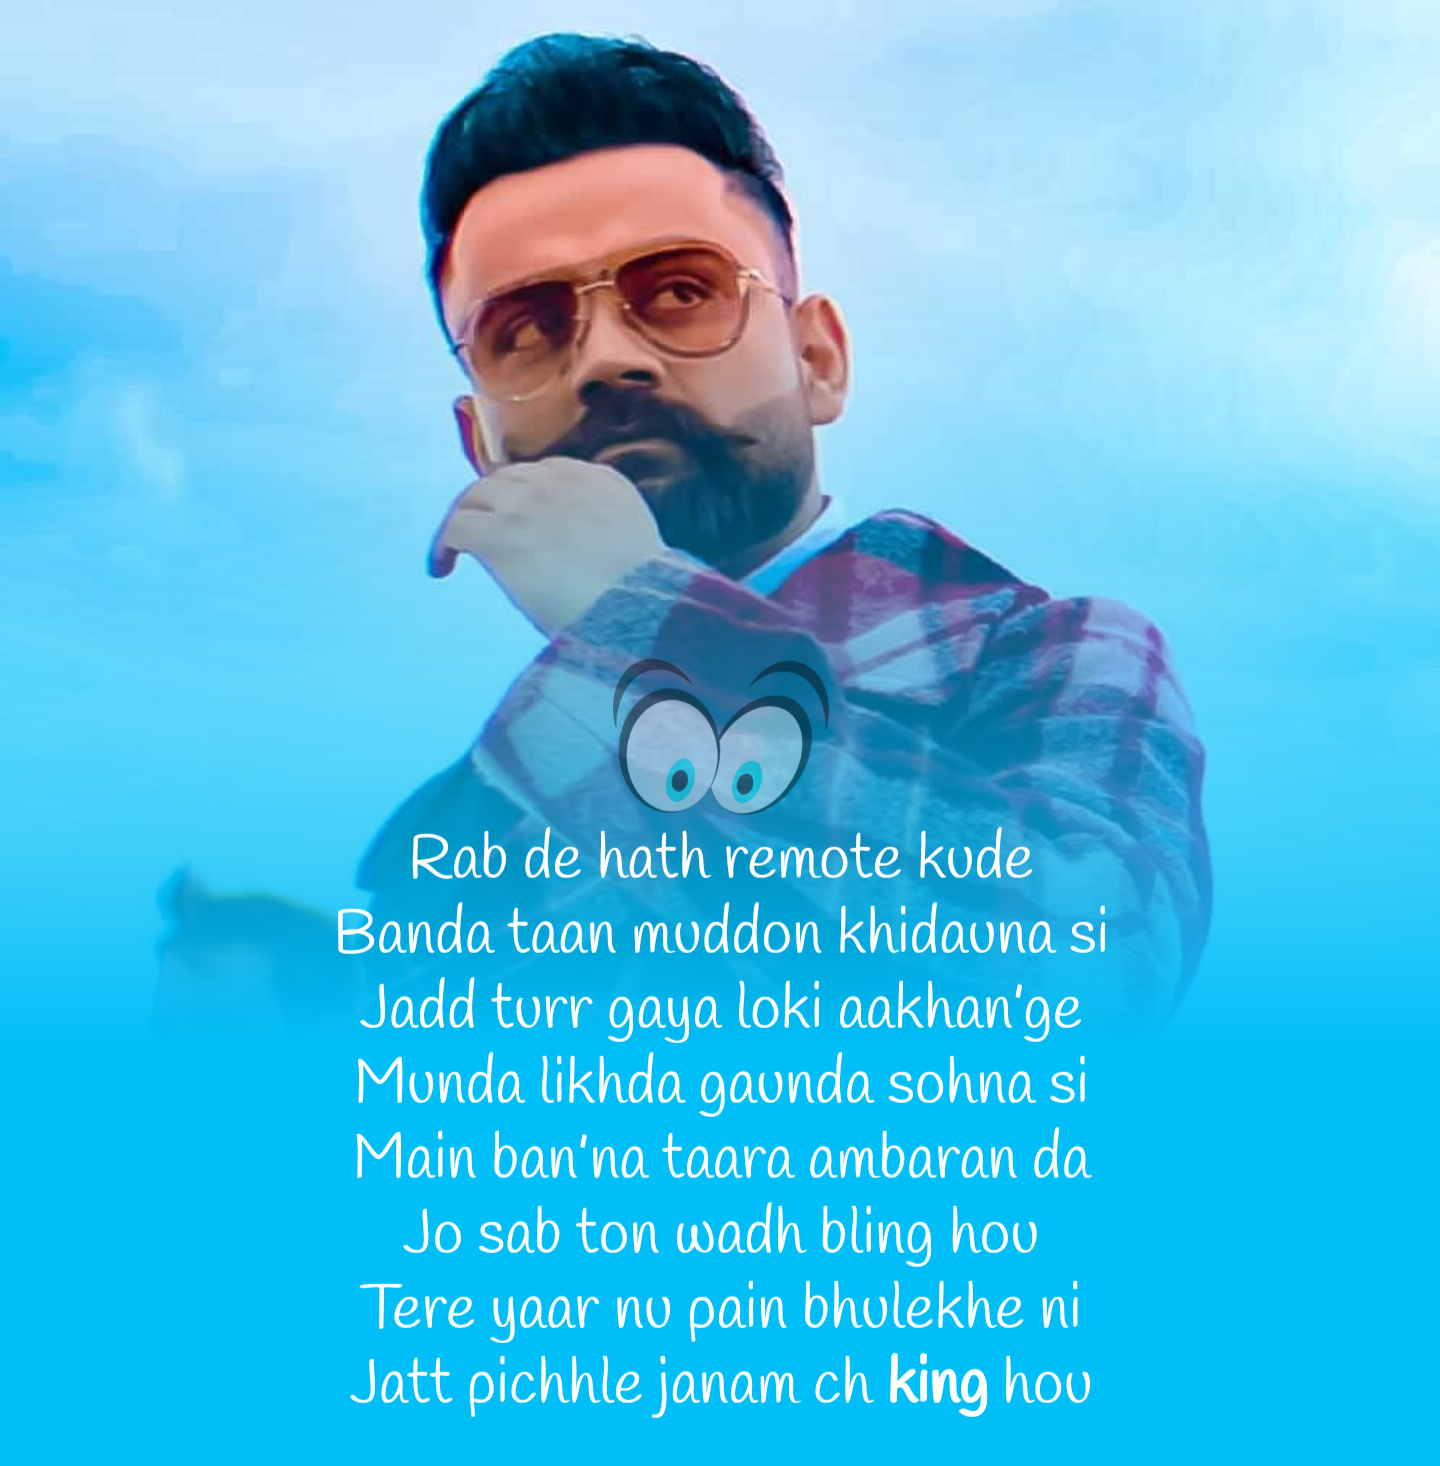 THE KING LYRICS - Amrit Maan has sung and written the The